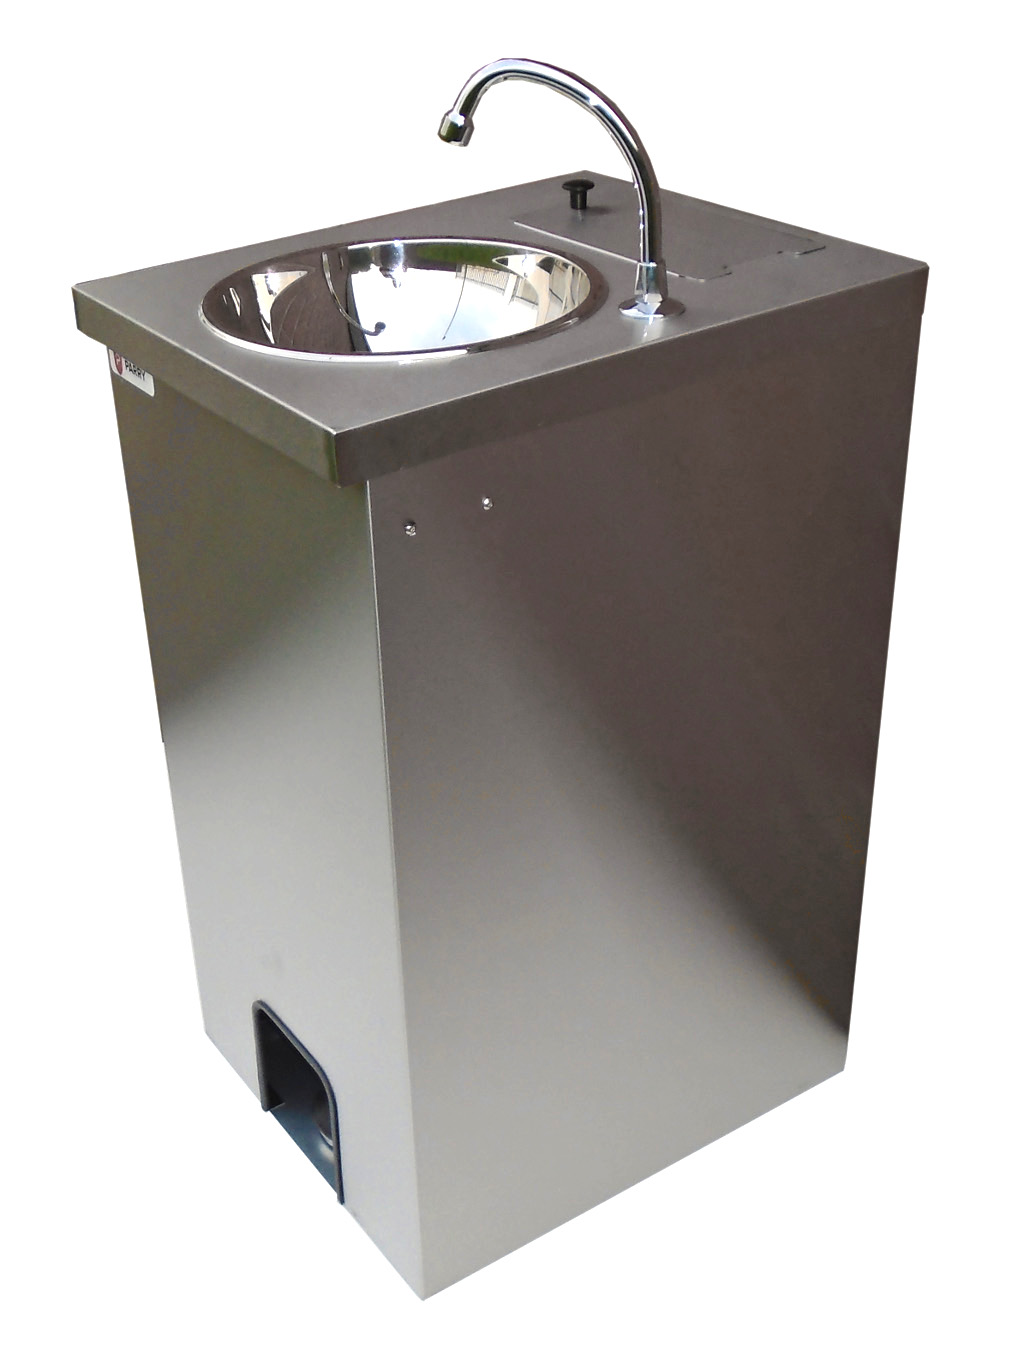 Electric Portable Sink Hot Hand Wash, St.Steel cupboard, 25 lts